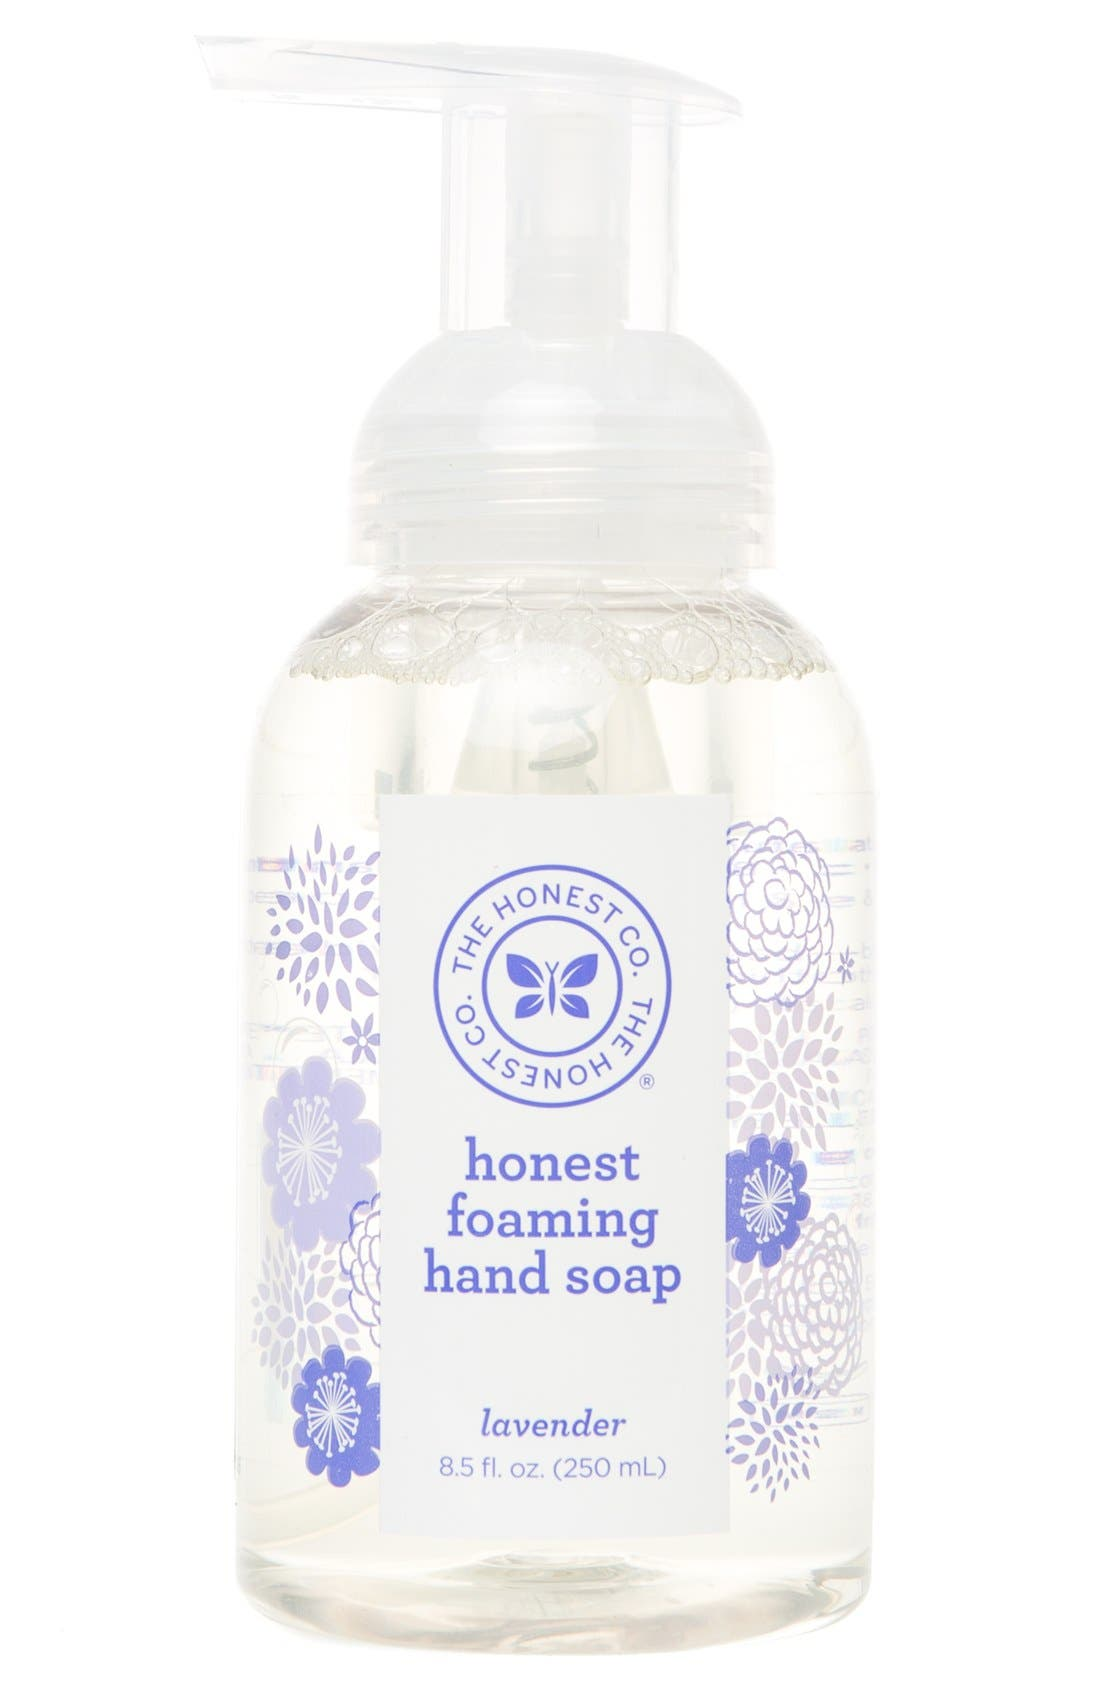 The Honest Company Foaming Hand Soap